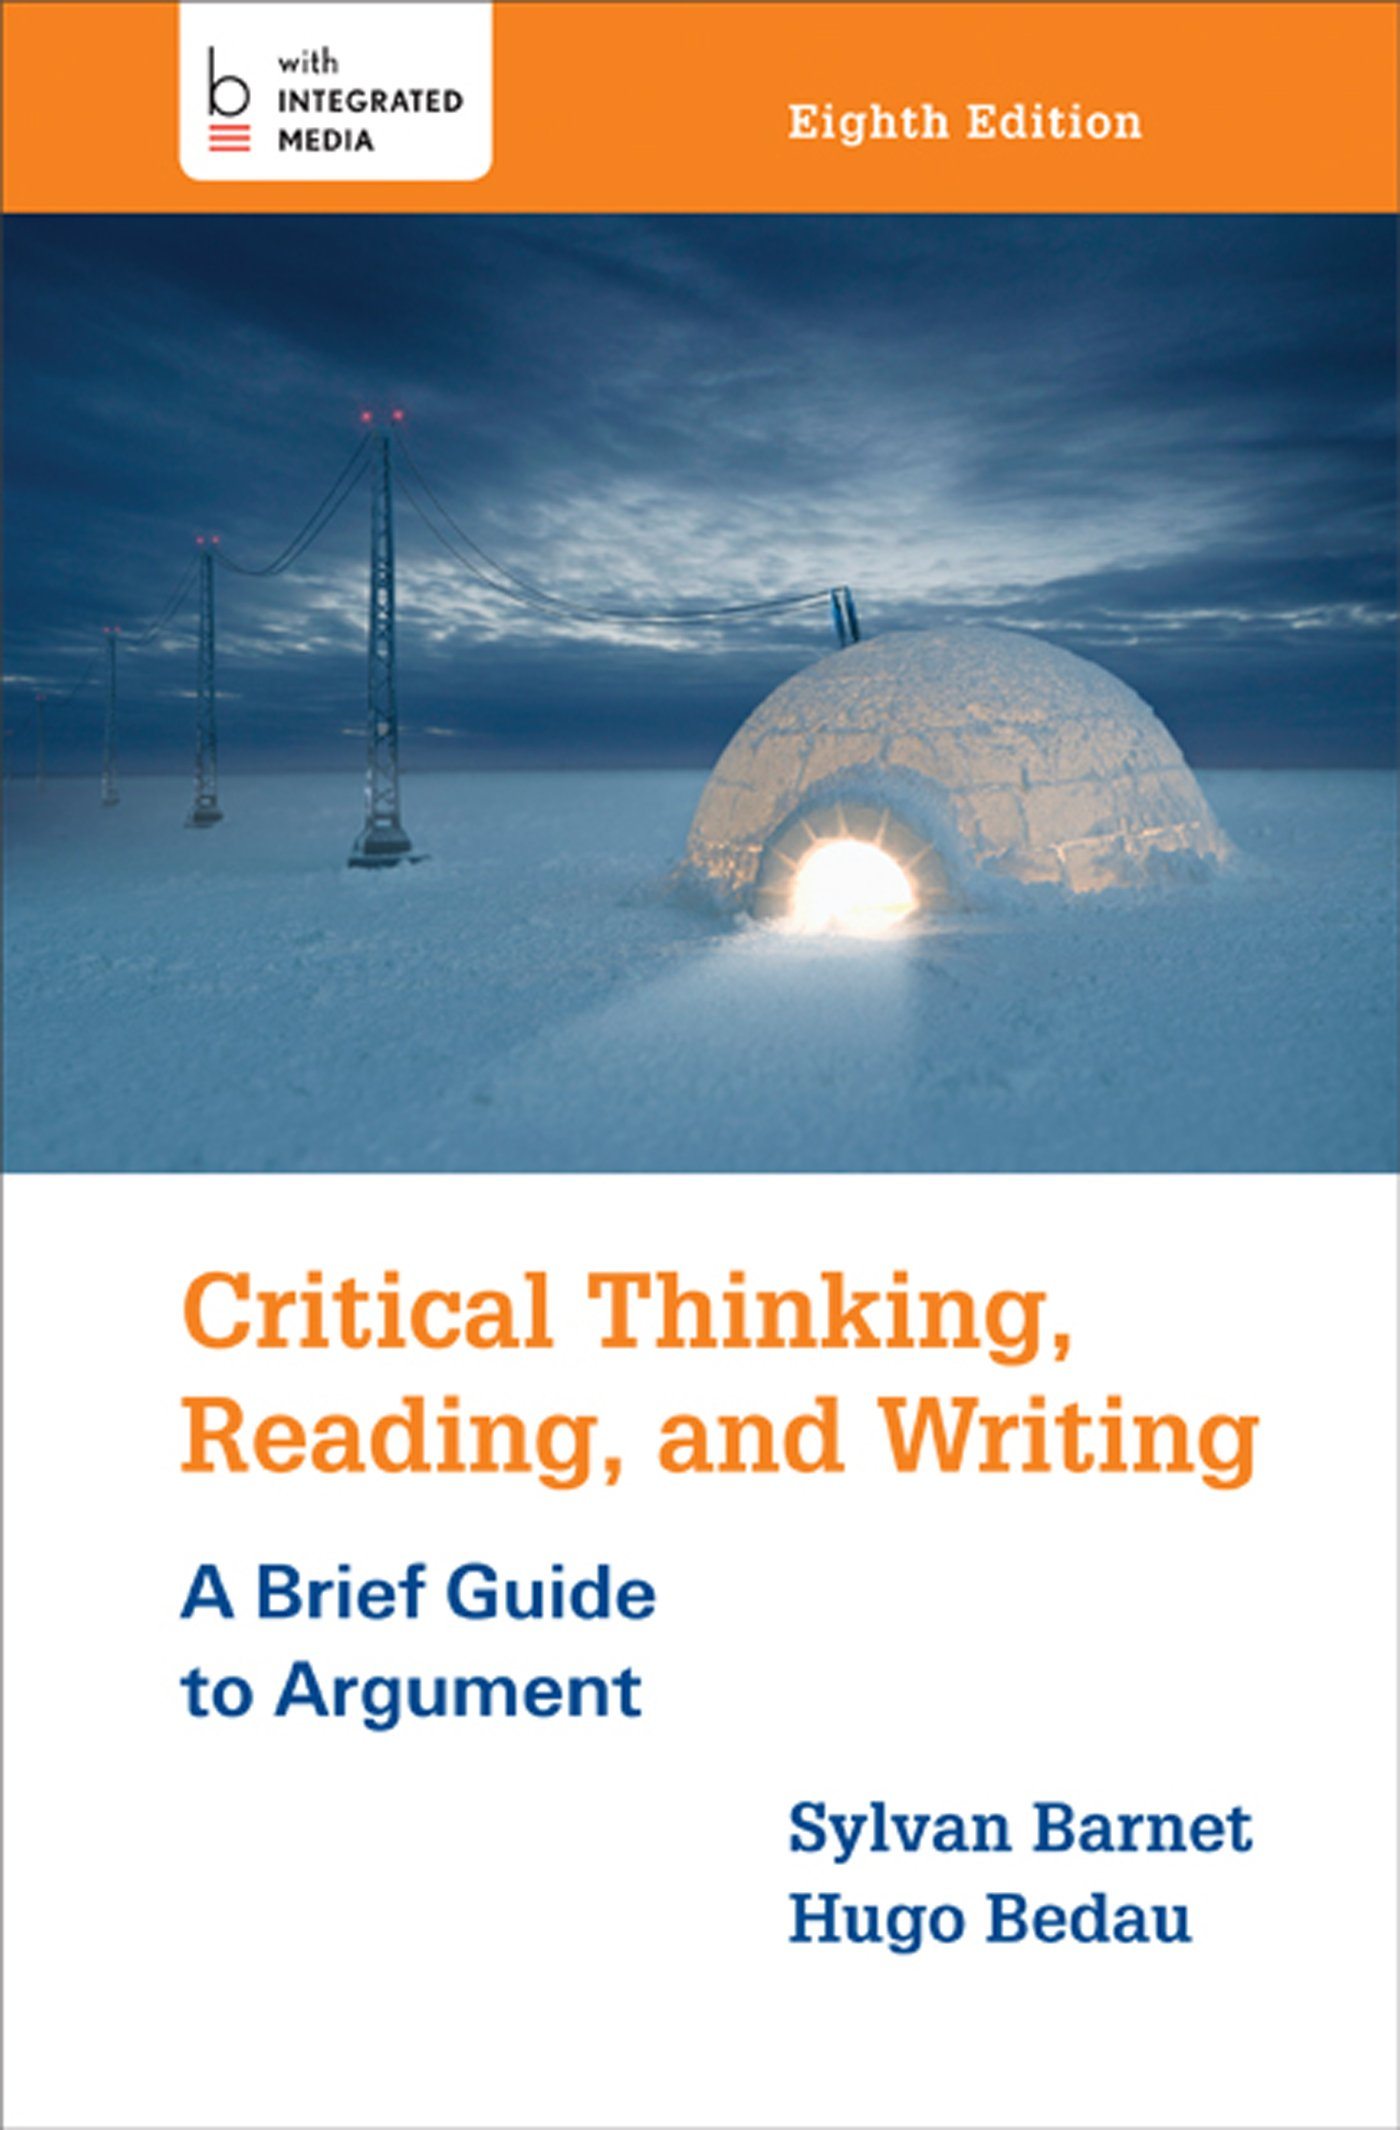 critical thinking in reading and writing Critical thinking, reading, and writing is a compact but complete guide to critical thinking and argumentation comprising the text portion of the widely adopted current issues.